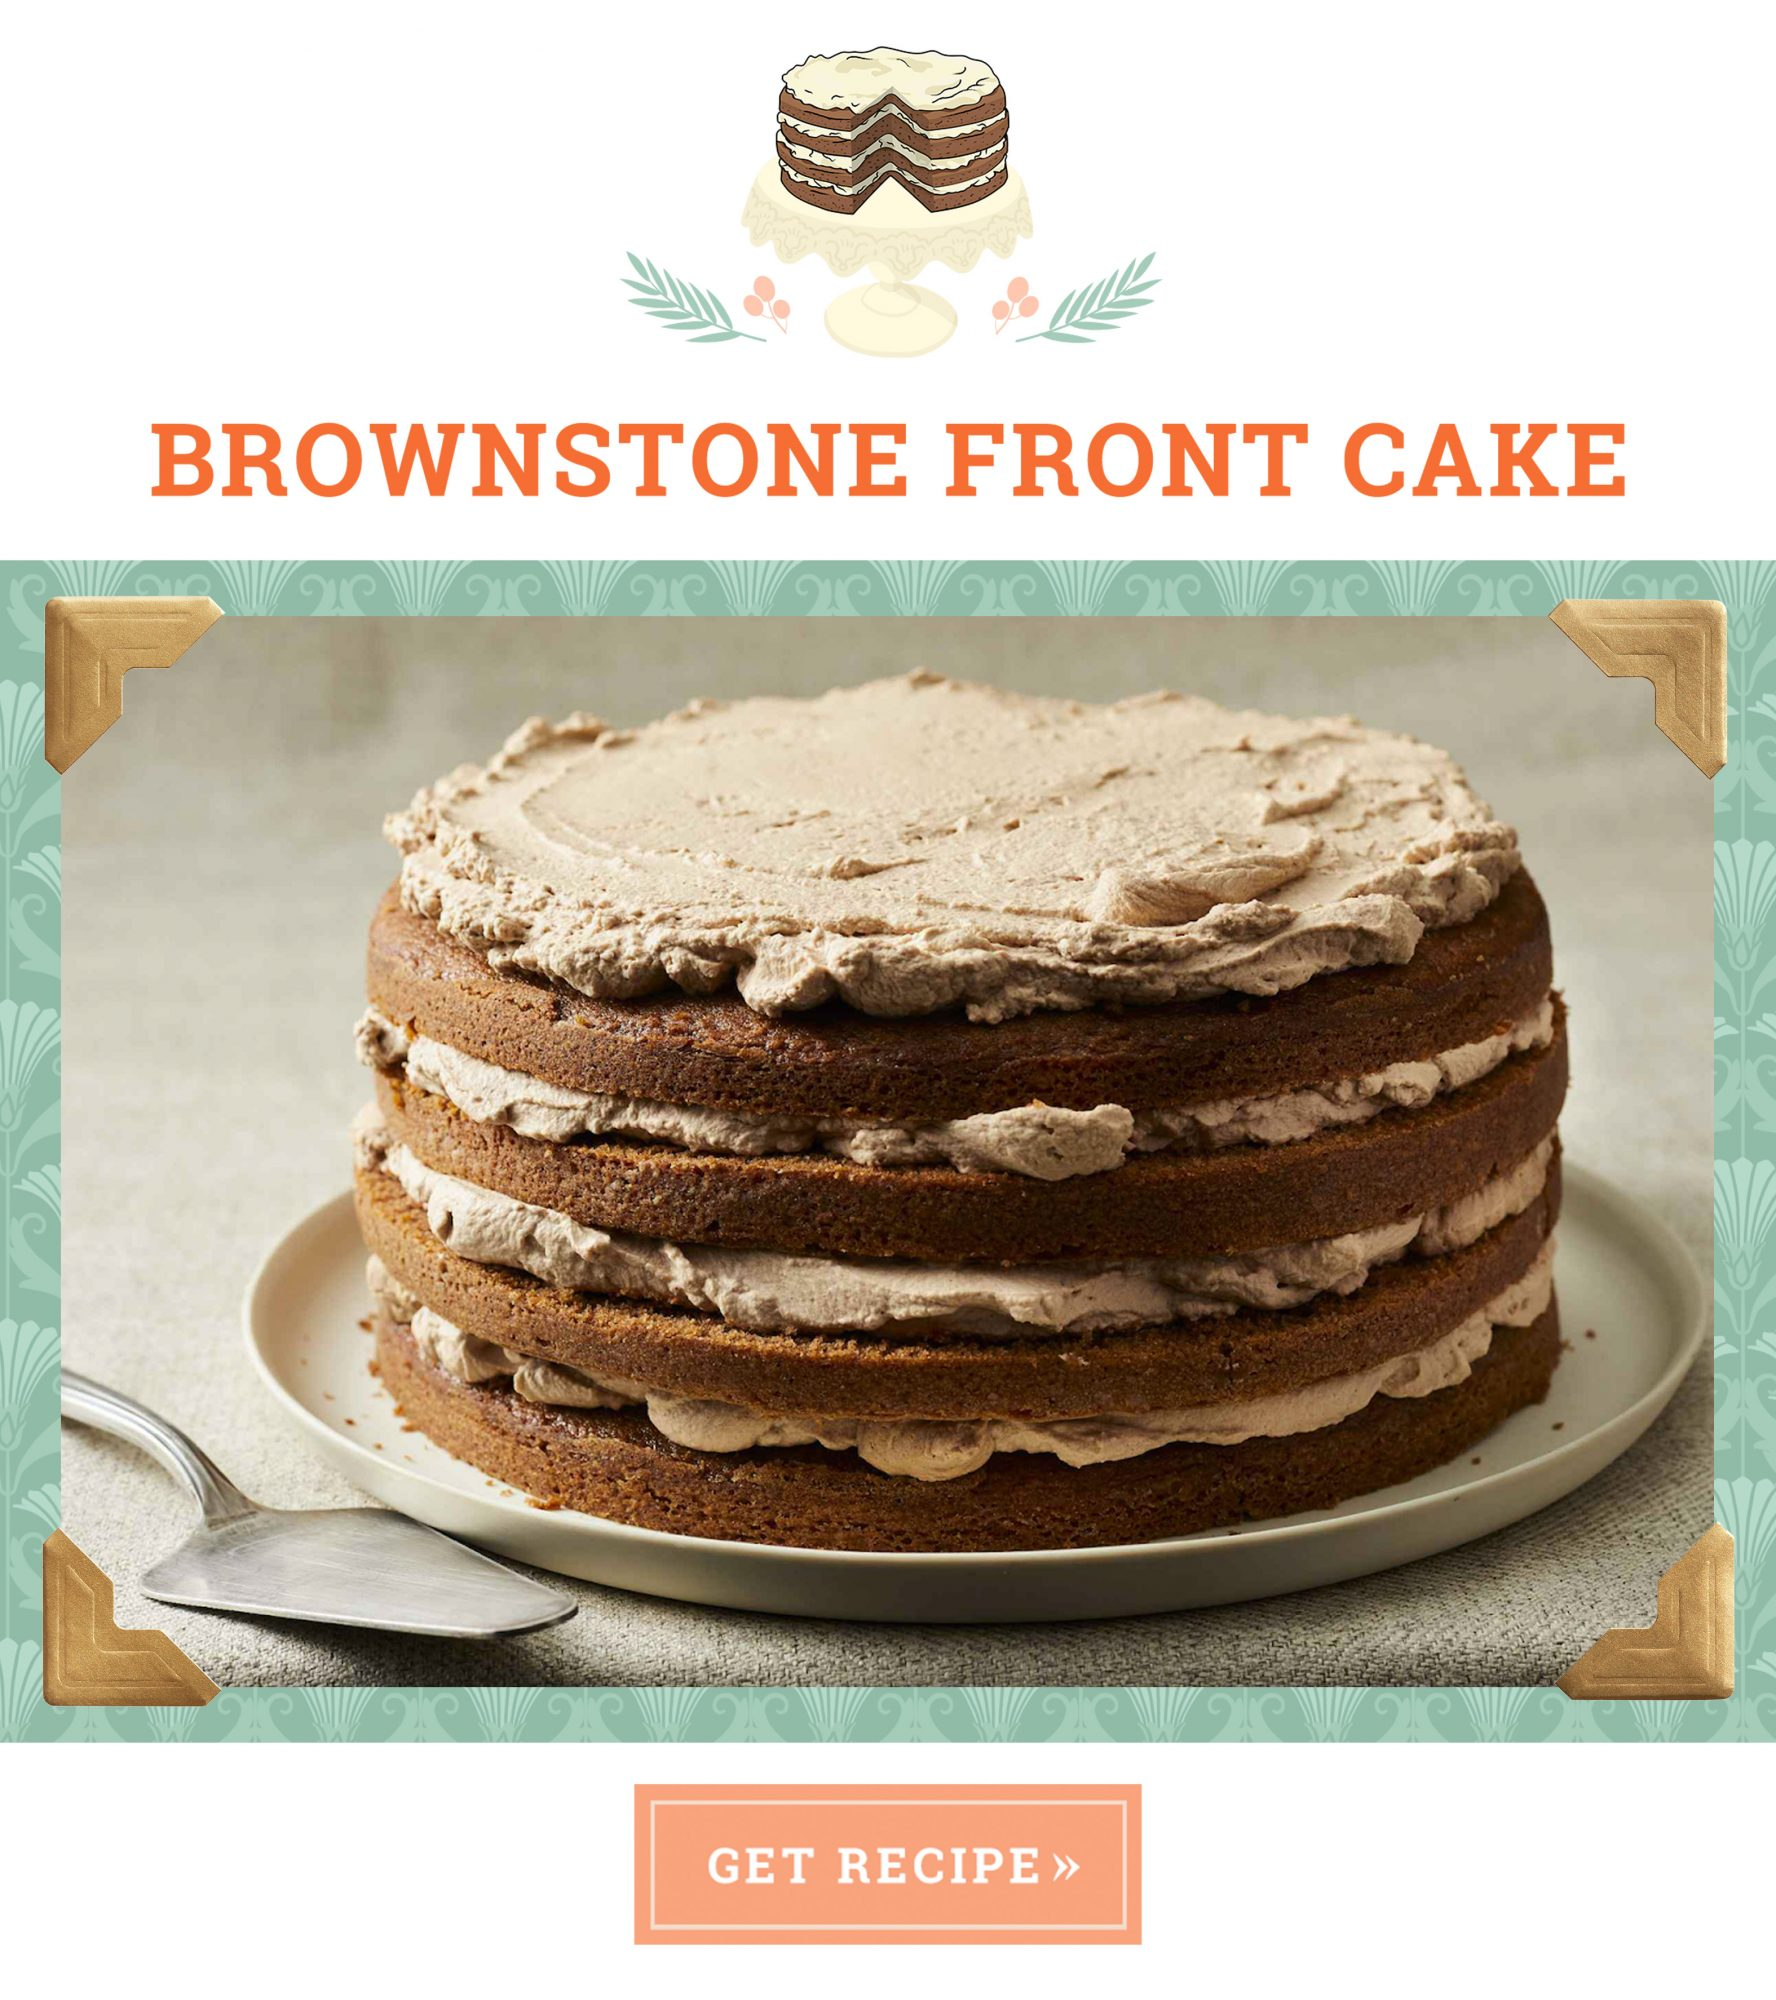 Brownstone Front Cake Recipe and Button